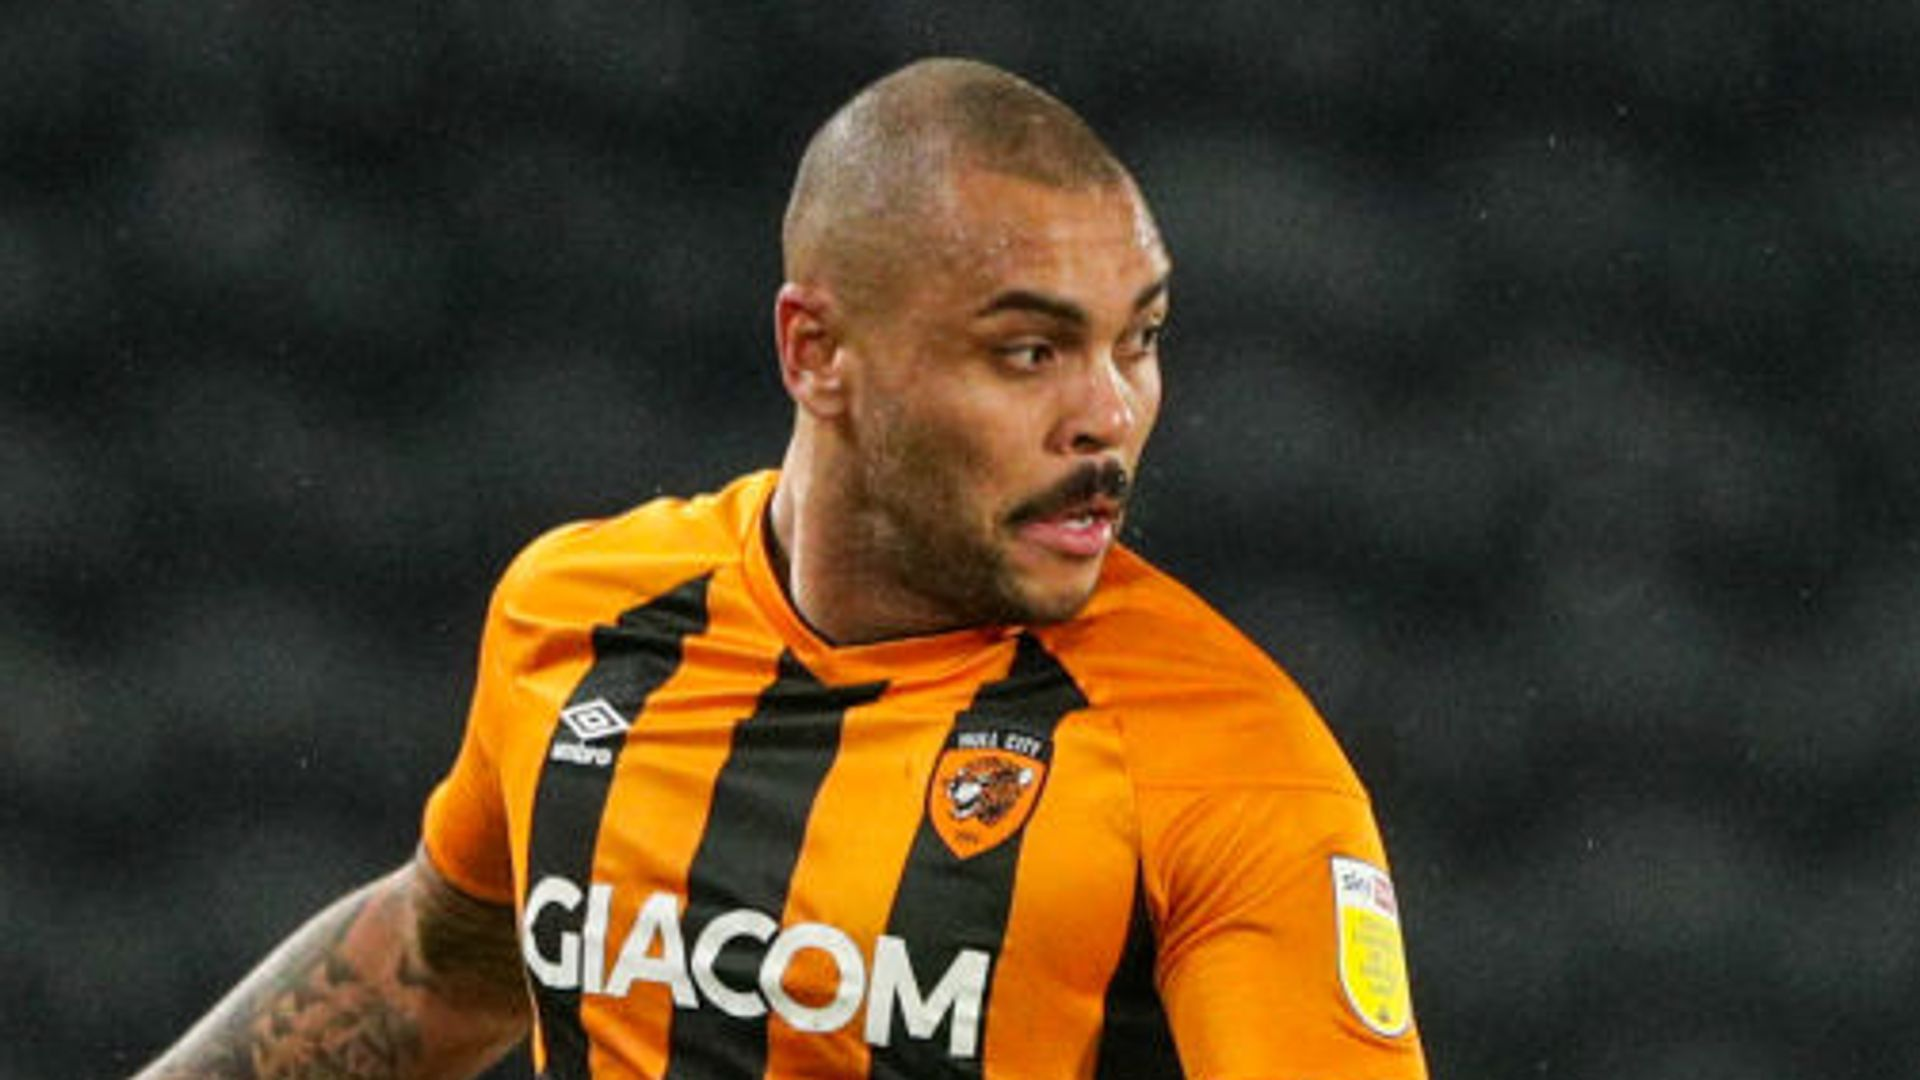 Magennis: I struggled to breathe with coronavirus